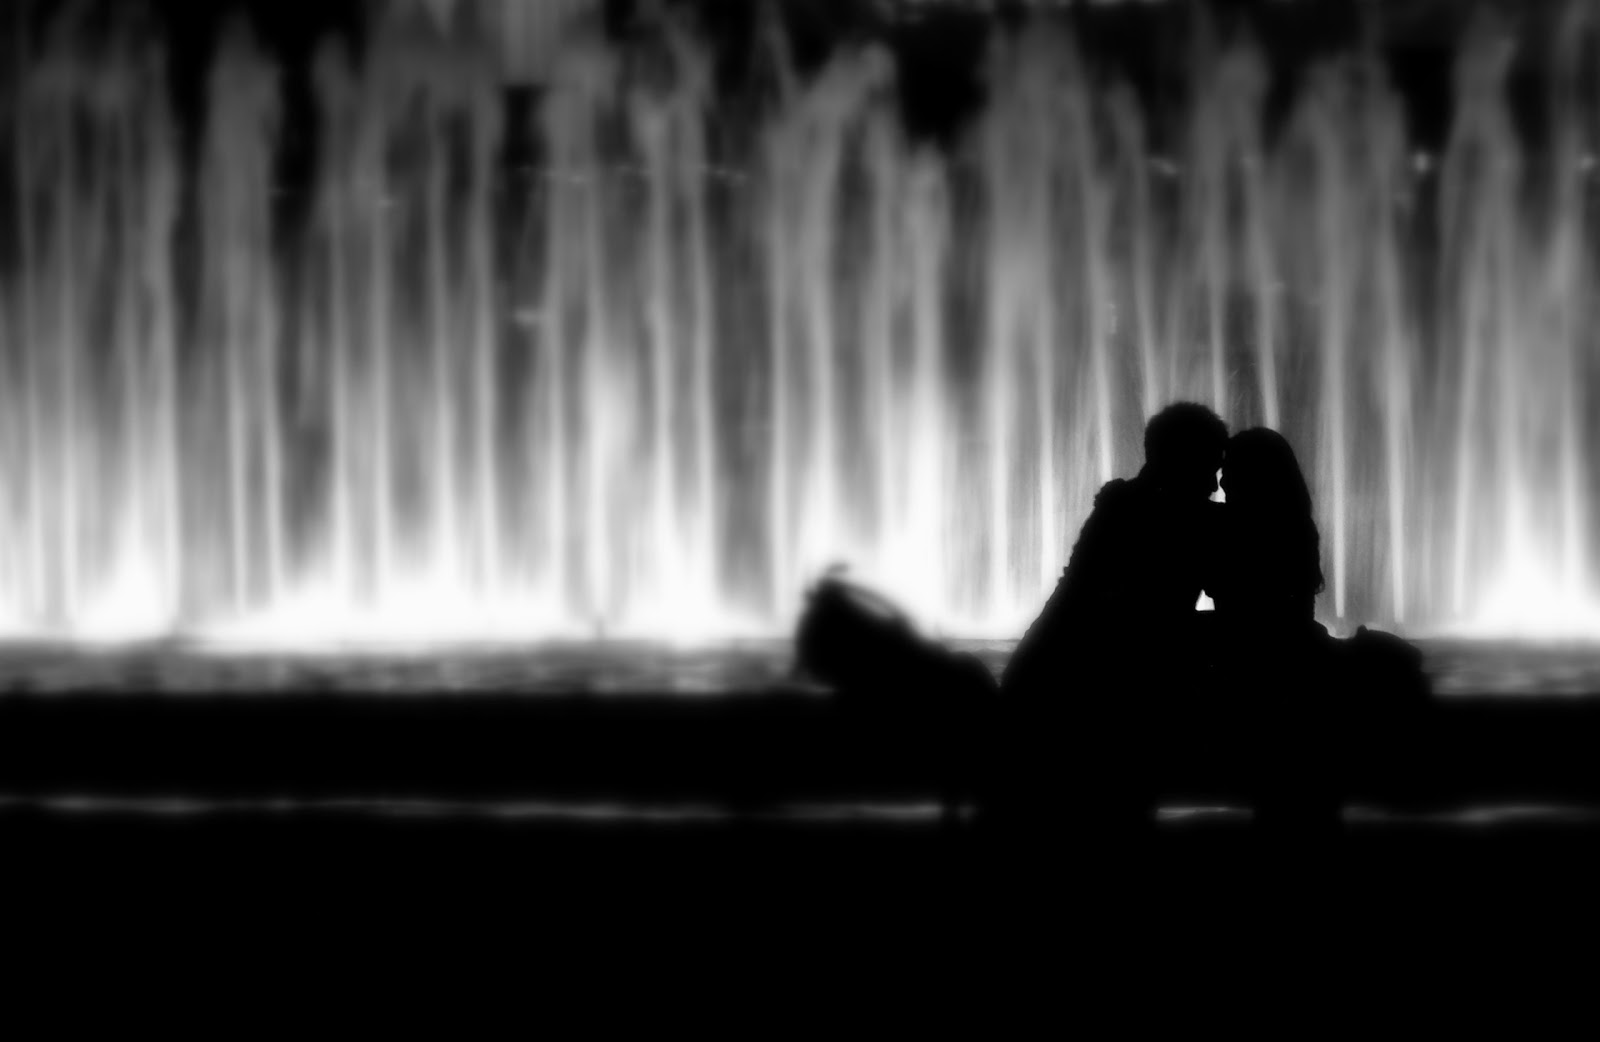 Love Wallpaper couple Kiss : love kiss Hd wallpaper for valentines day 2016 - Love kiss ...